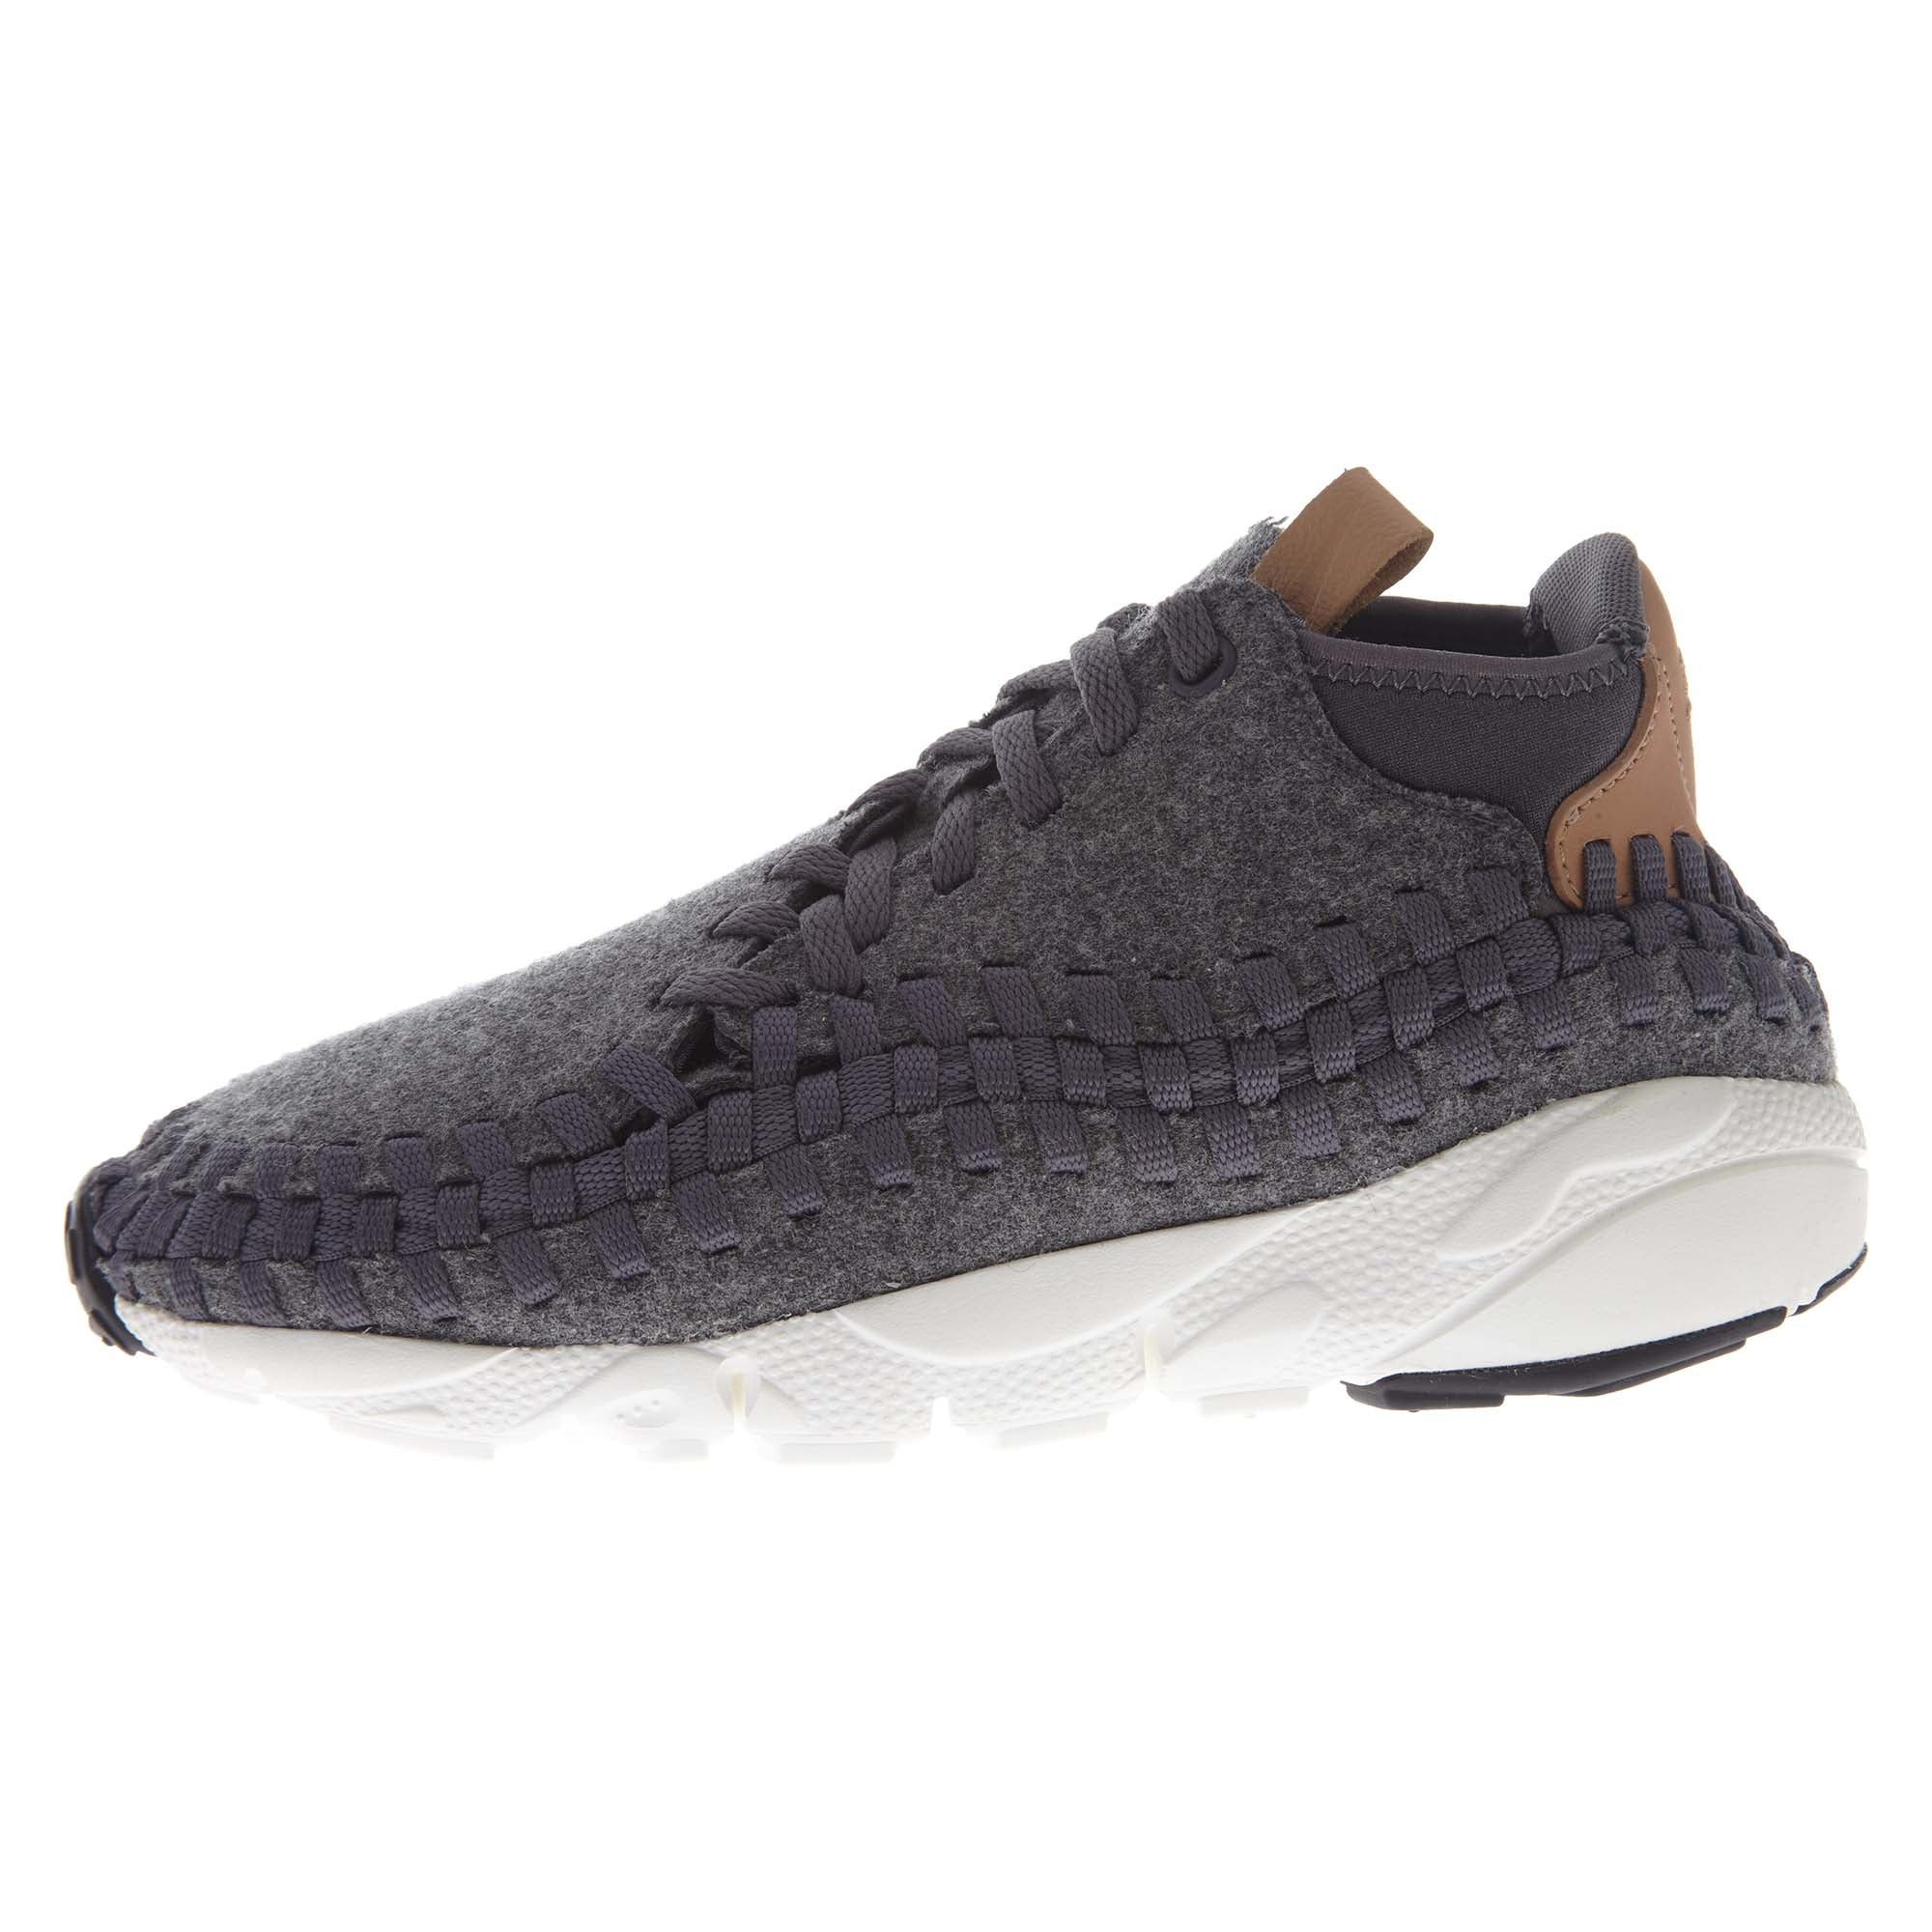 58bcbc2e20e4 Nike Air Footscape Woven Chukka Se Mens Style   857874-002 – talkmoney730